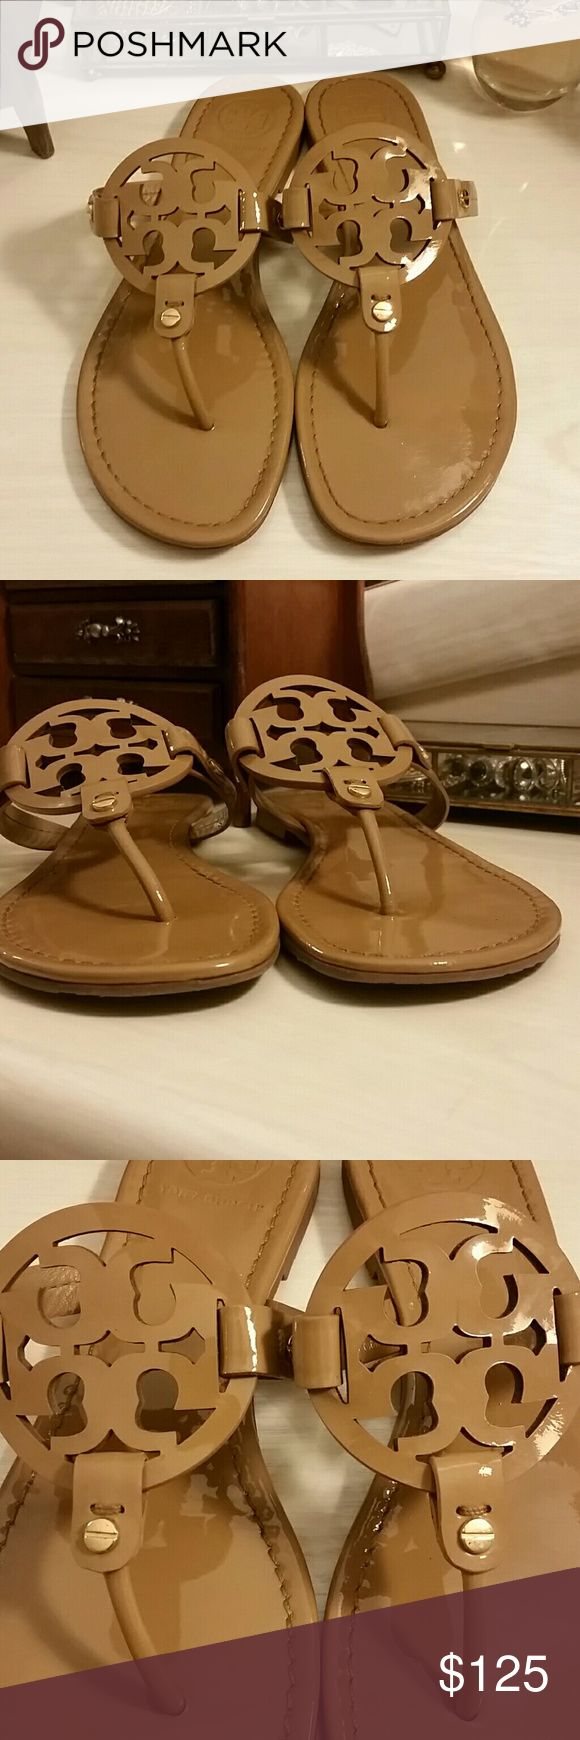 Tory Burch miller Sandals in Patent Tan Sand -------PRICE FIRM------- Tory Burch Miller Sandals in Tan Patent Leather Color of Sand. Preowned with minimal wear to front, heels, footbed, and soles consistent with pictures.  Size 8.5  Reviews online on the Tory Burch Miller Sandal will give you a well rounded idea of how they fit.  No box/dustbag.  Just in time for vacation 🌞 or rush 📚.   *No trades, but thank you* -------PRICE FIRM------- Tory Burch Shoes Sandals